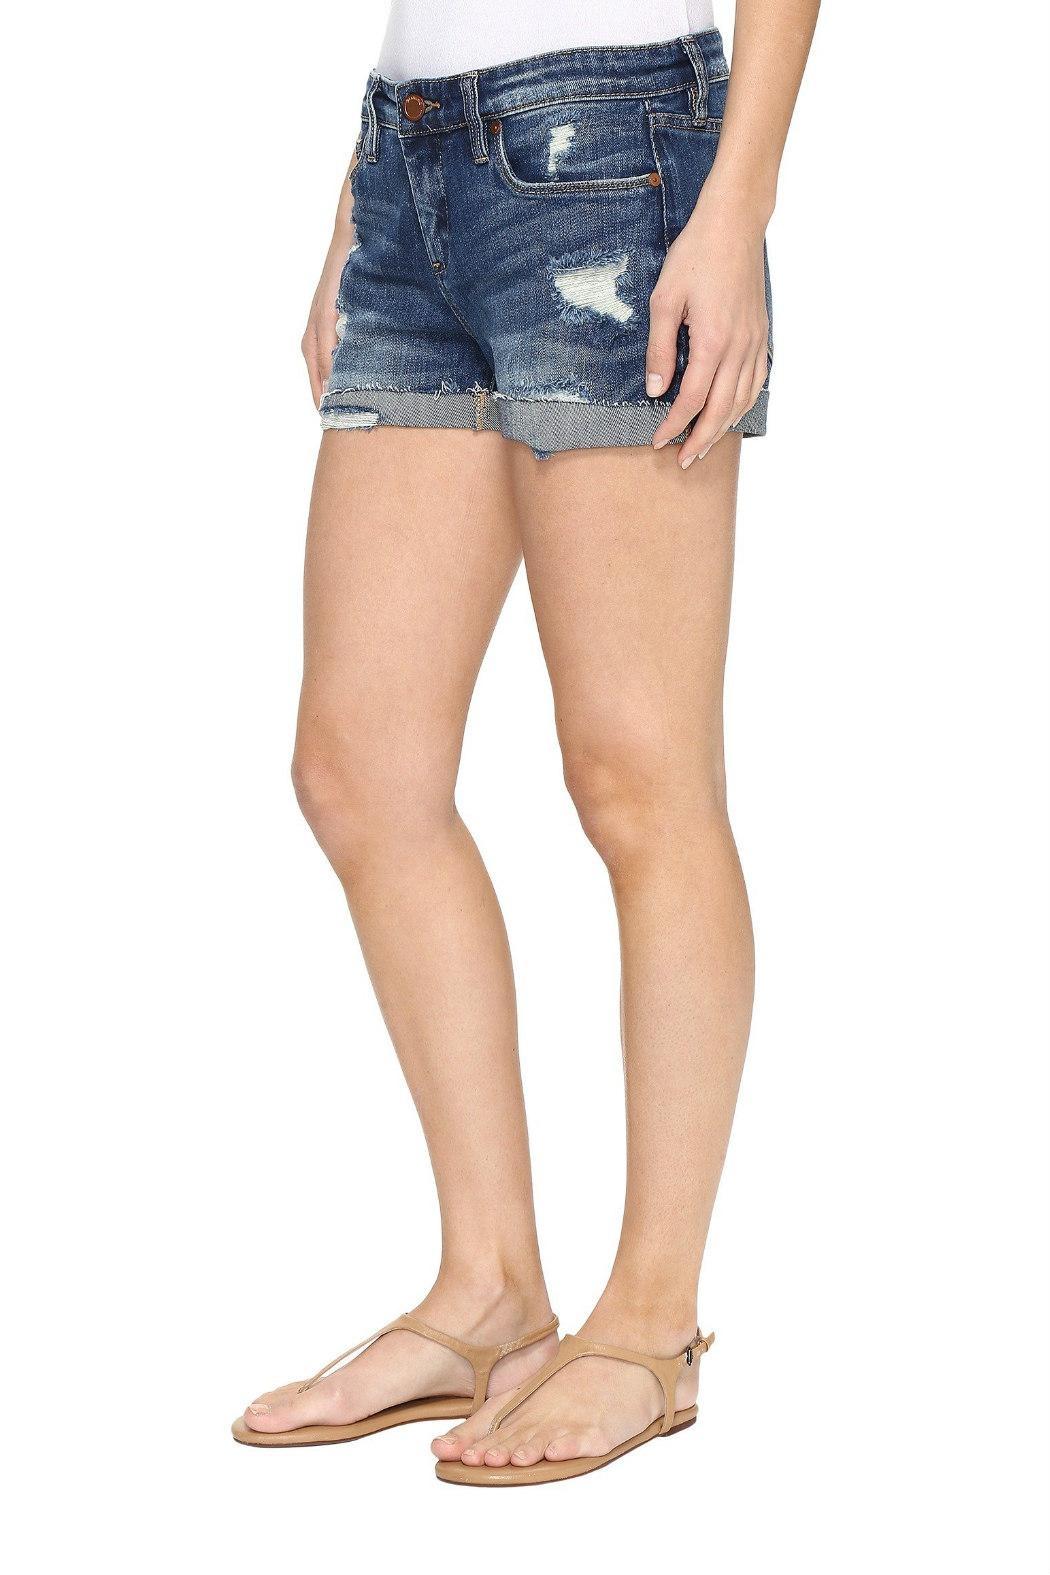 Blank NYC Distressed Denim Short - Front Full Image